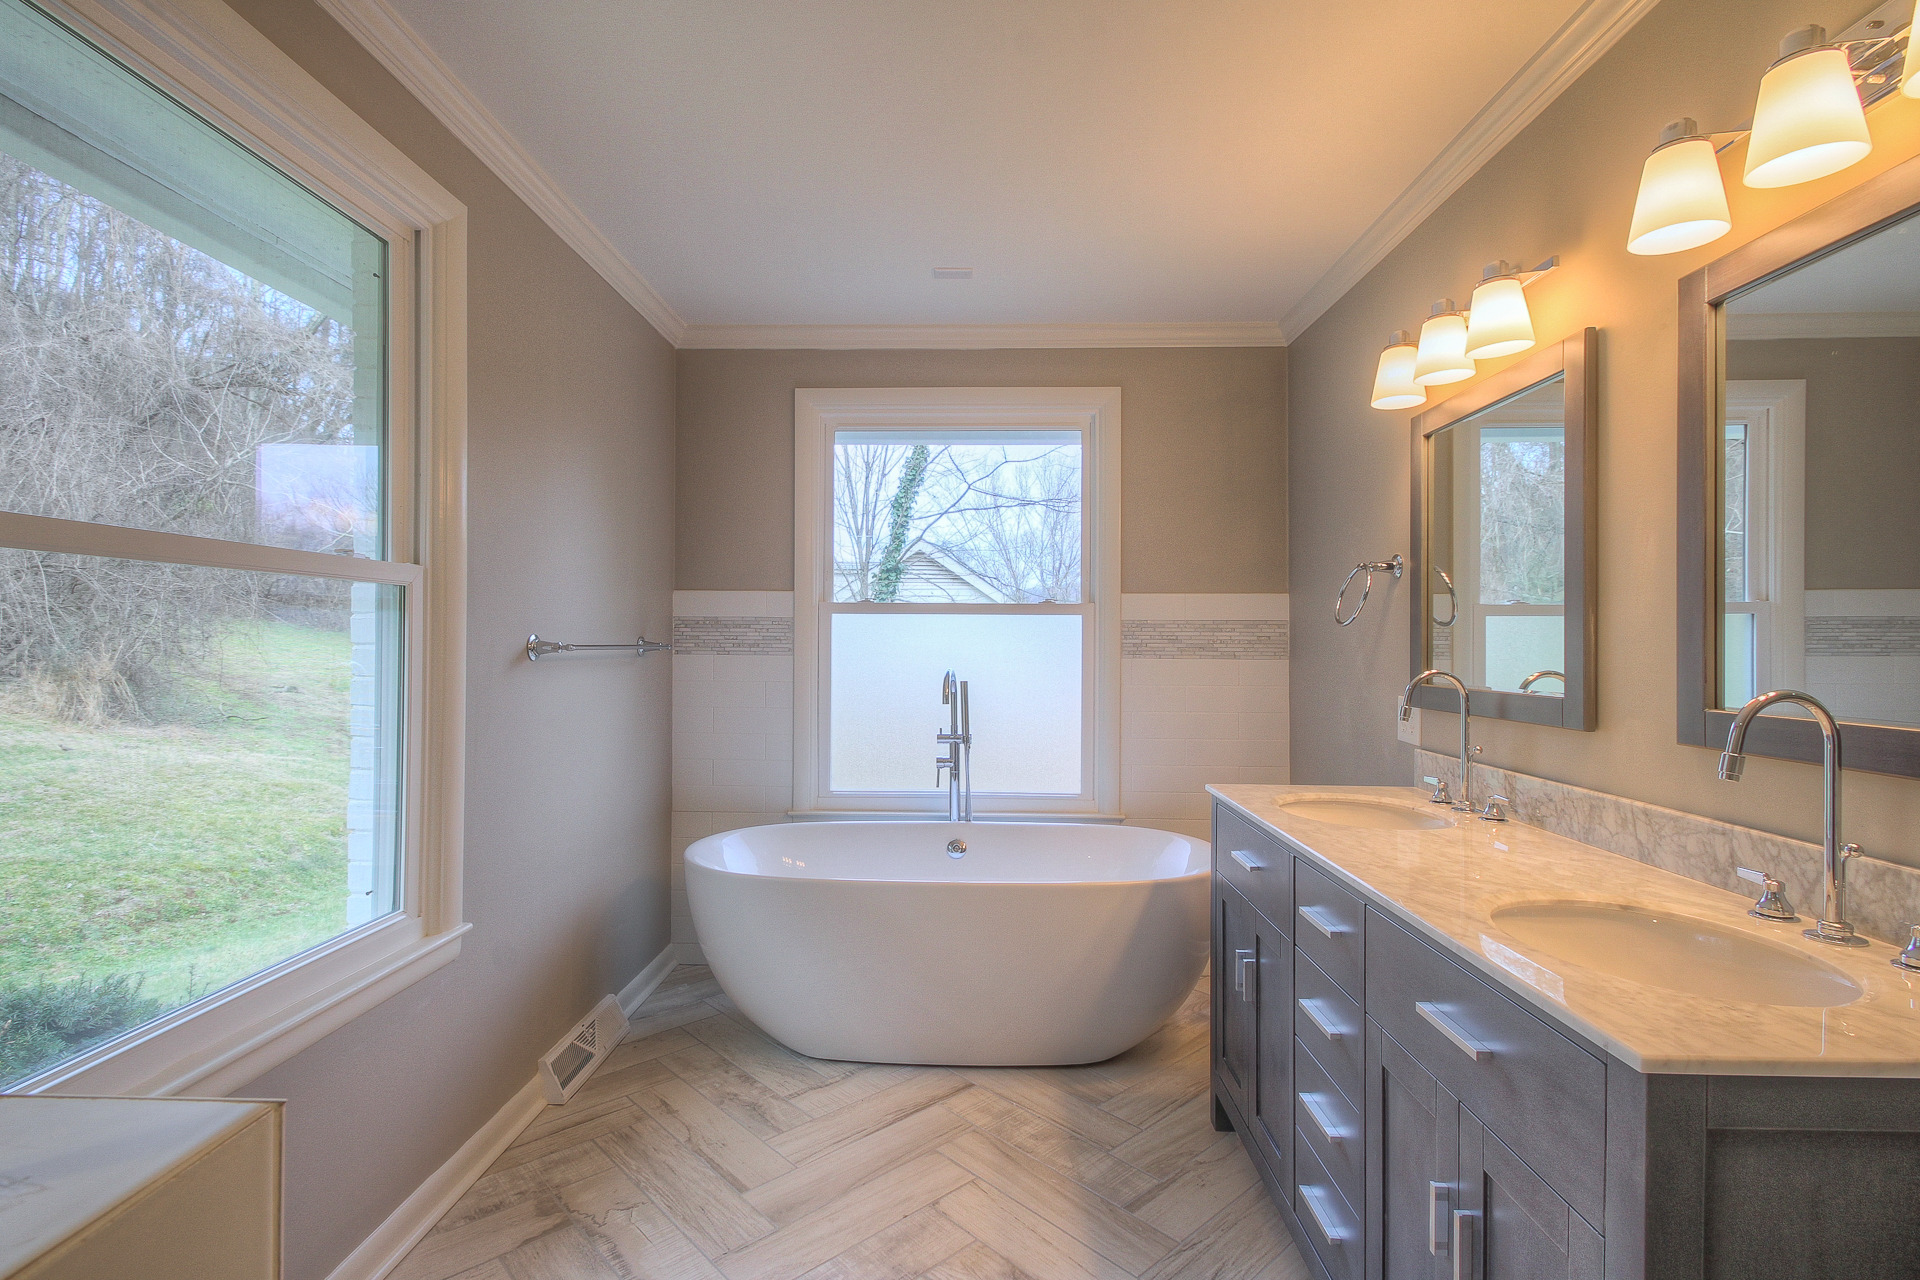 Master Bathroom with Double Vanities and Large Tub